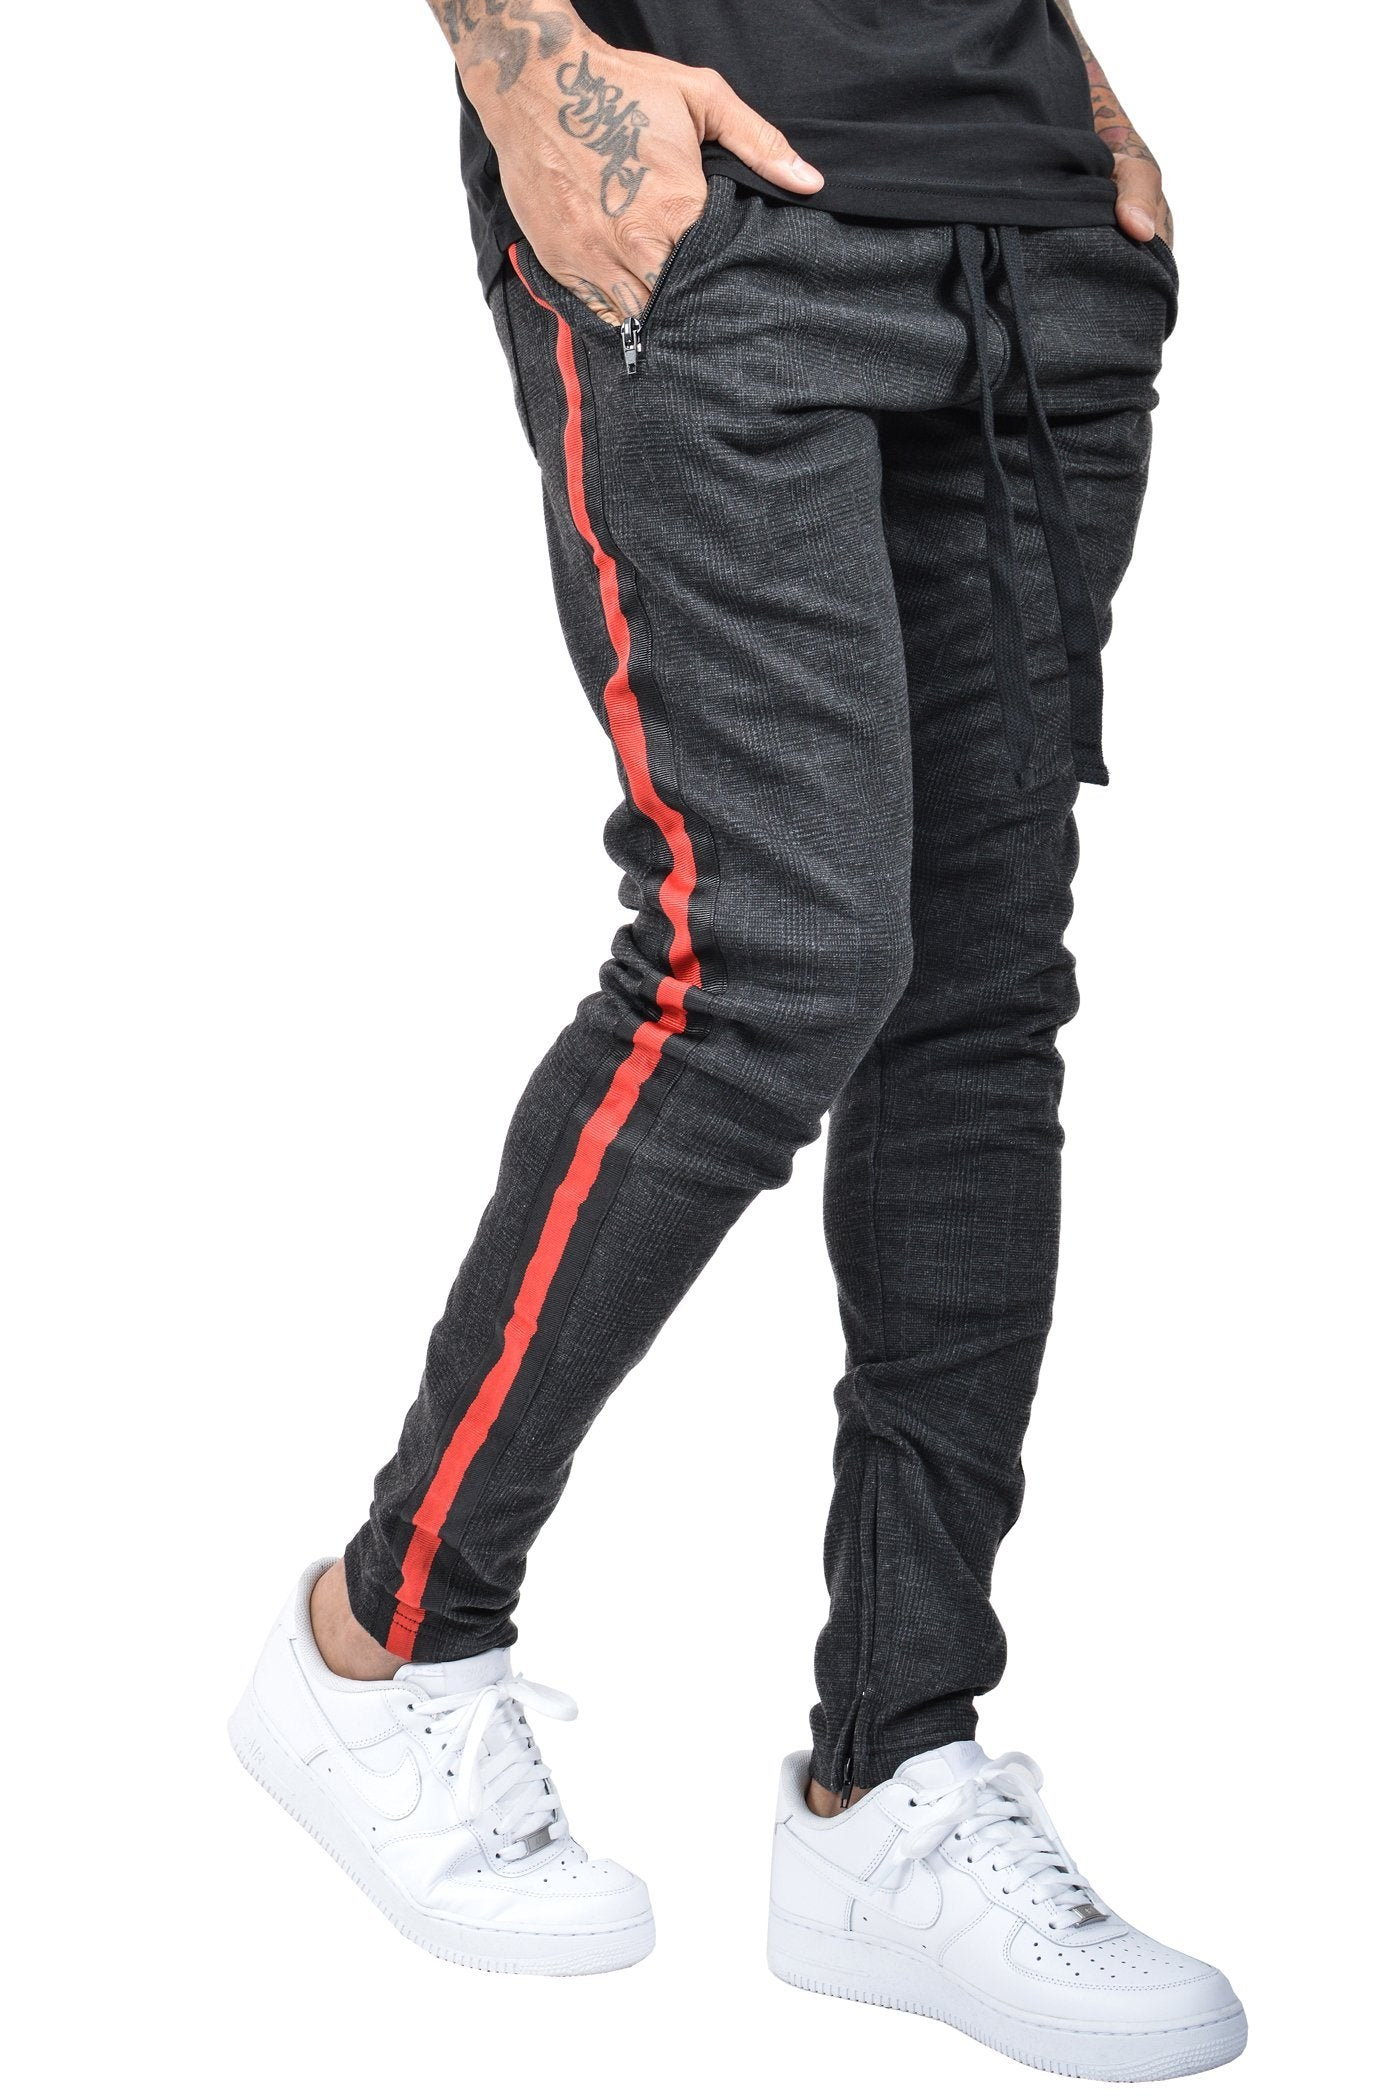 Benjamin Stripe Pants Antra-Black Red - PEGADOR - Dominate the Hype